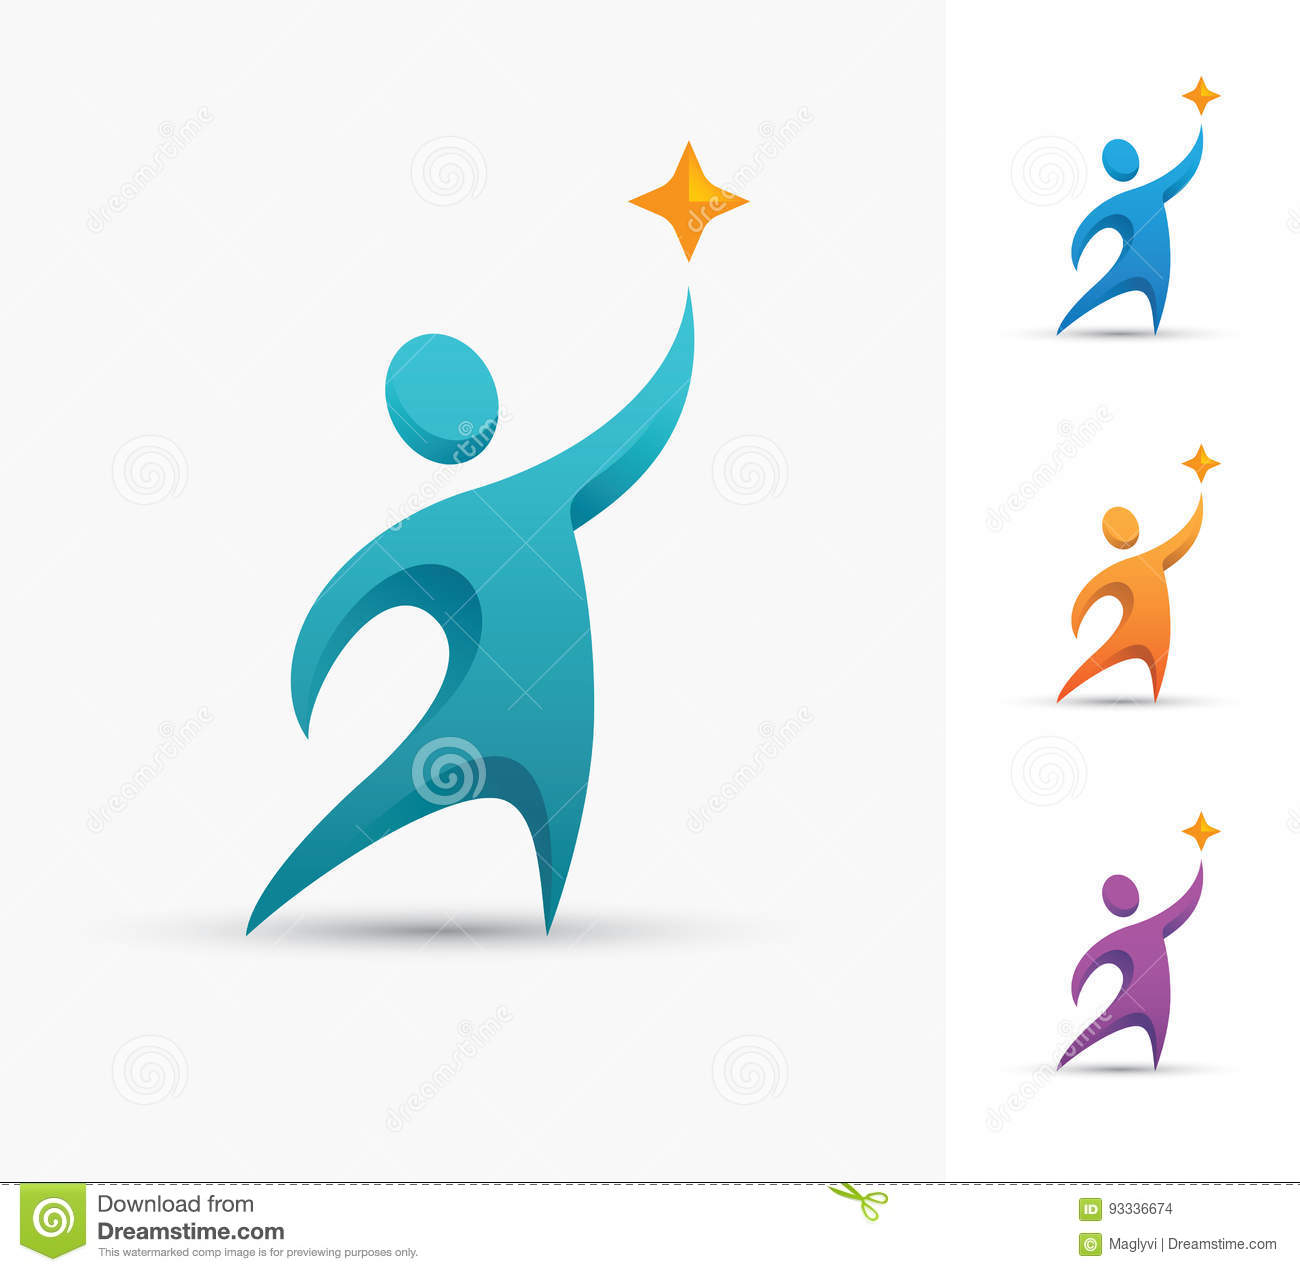 Achievement Logo human logo with star stock vector. illustration of achievement